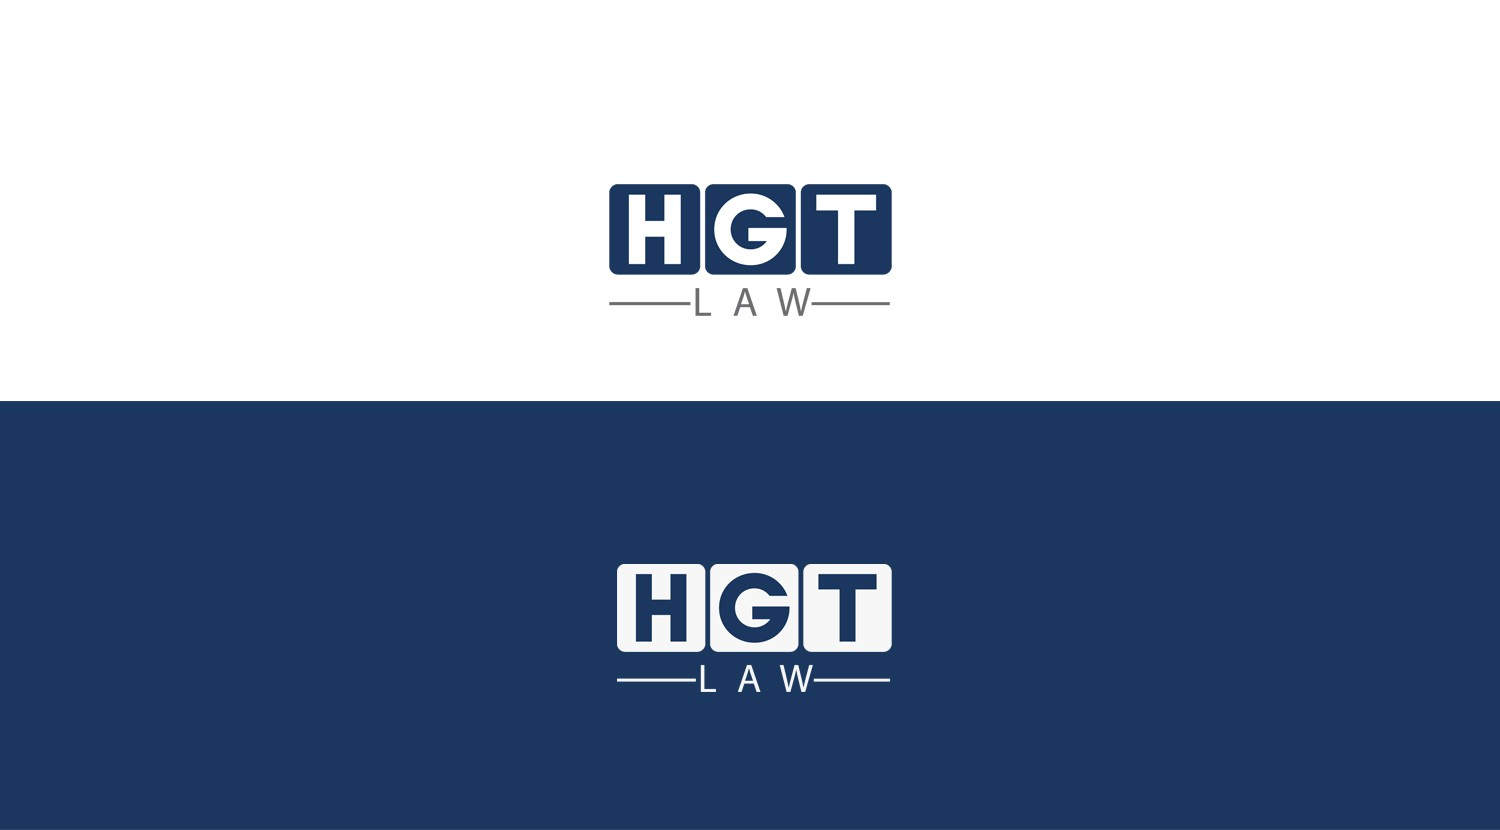 HGT Law needs a new logo